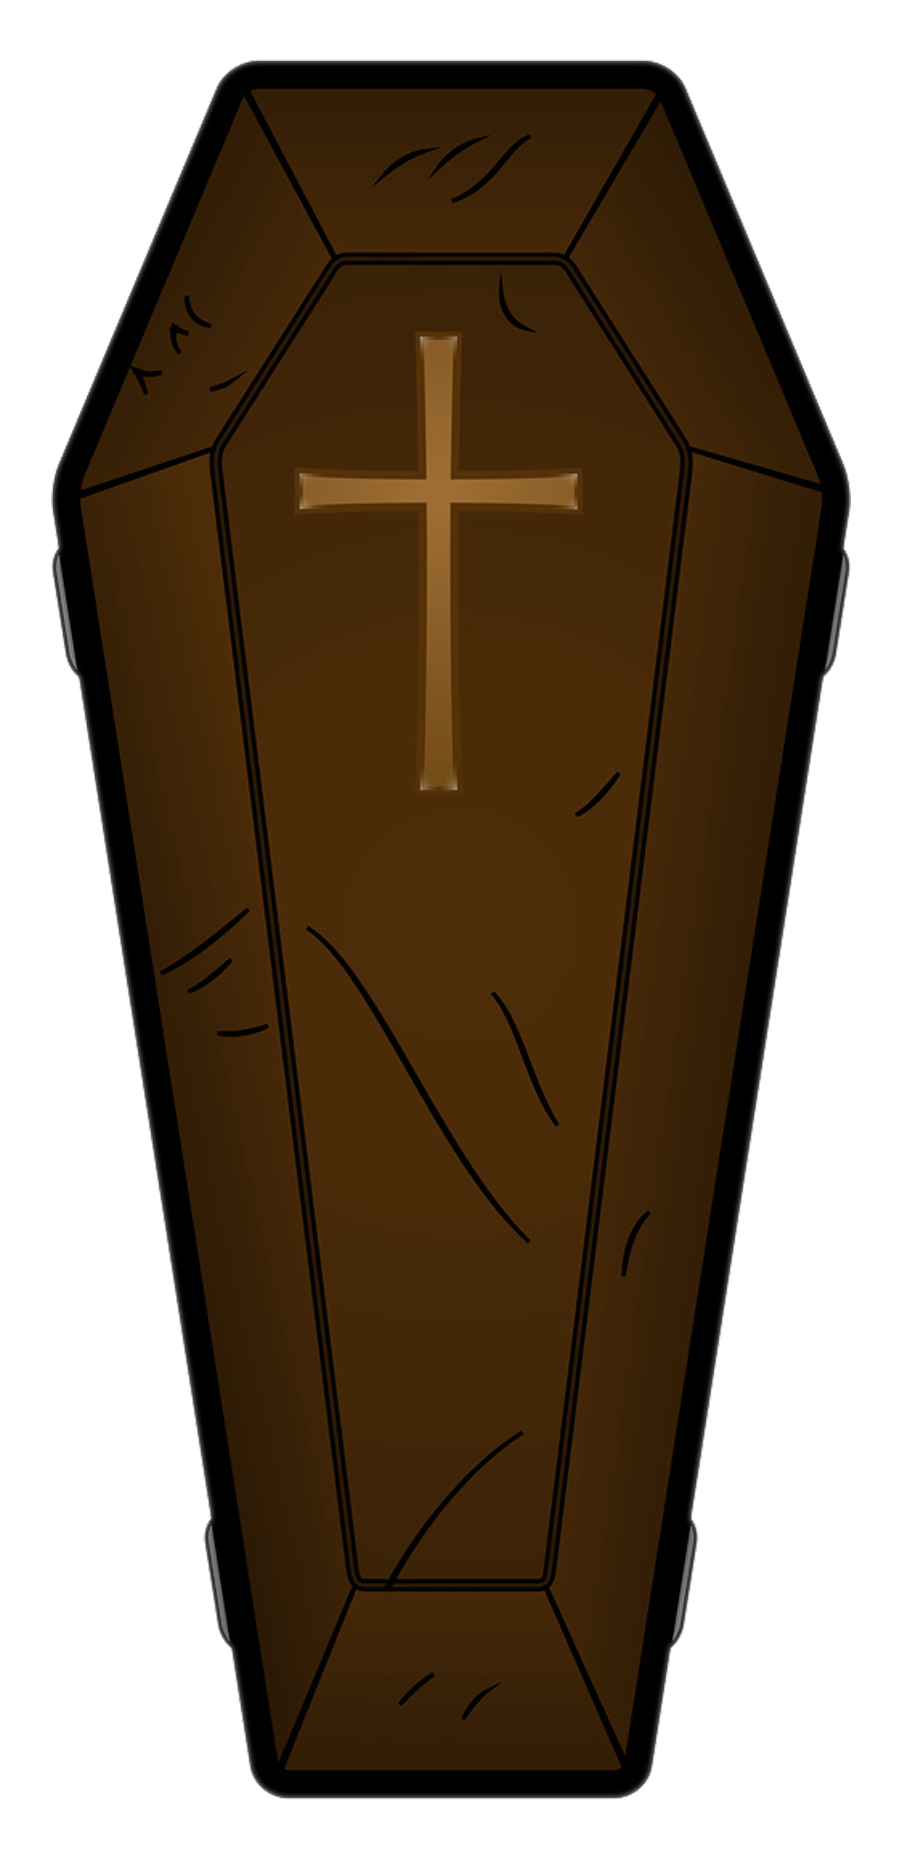 Clipart coffin.